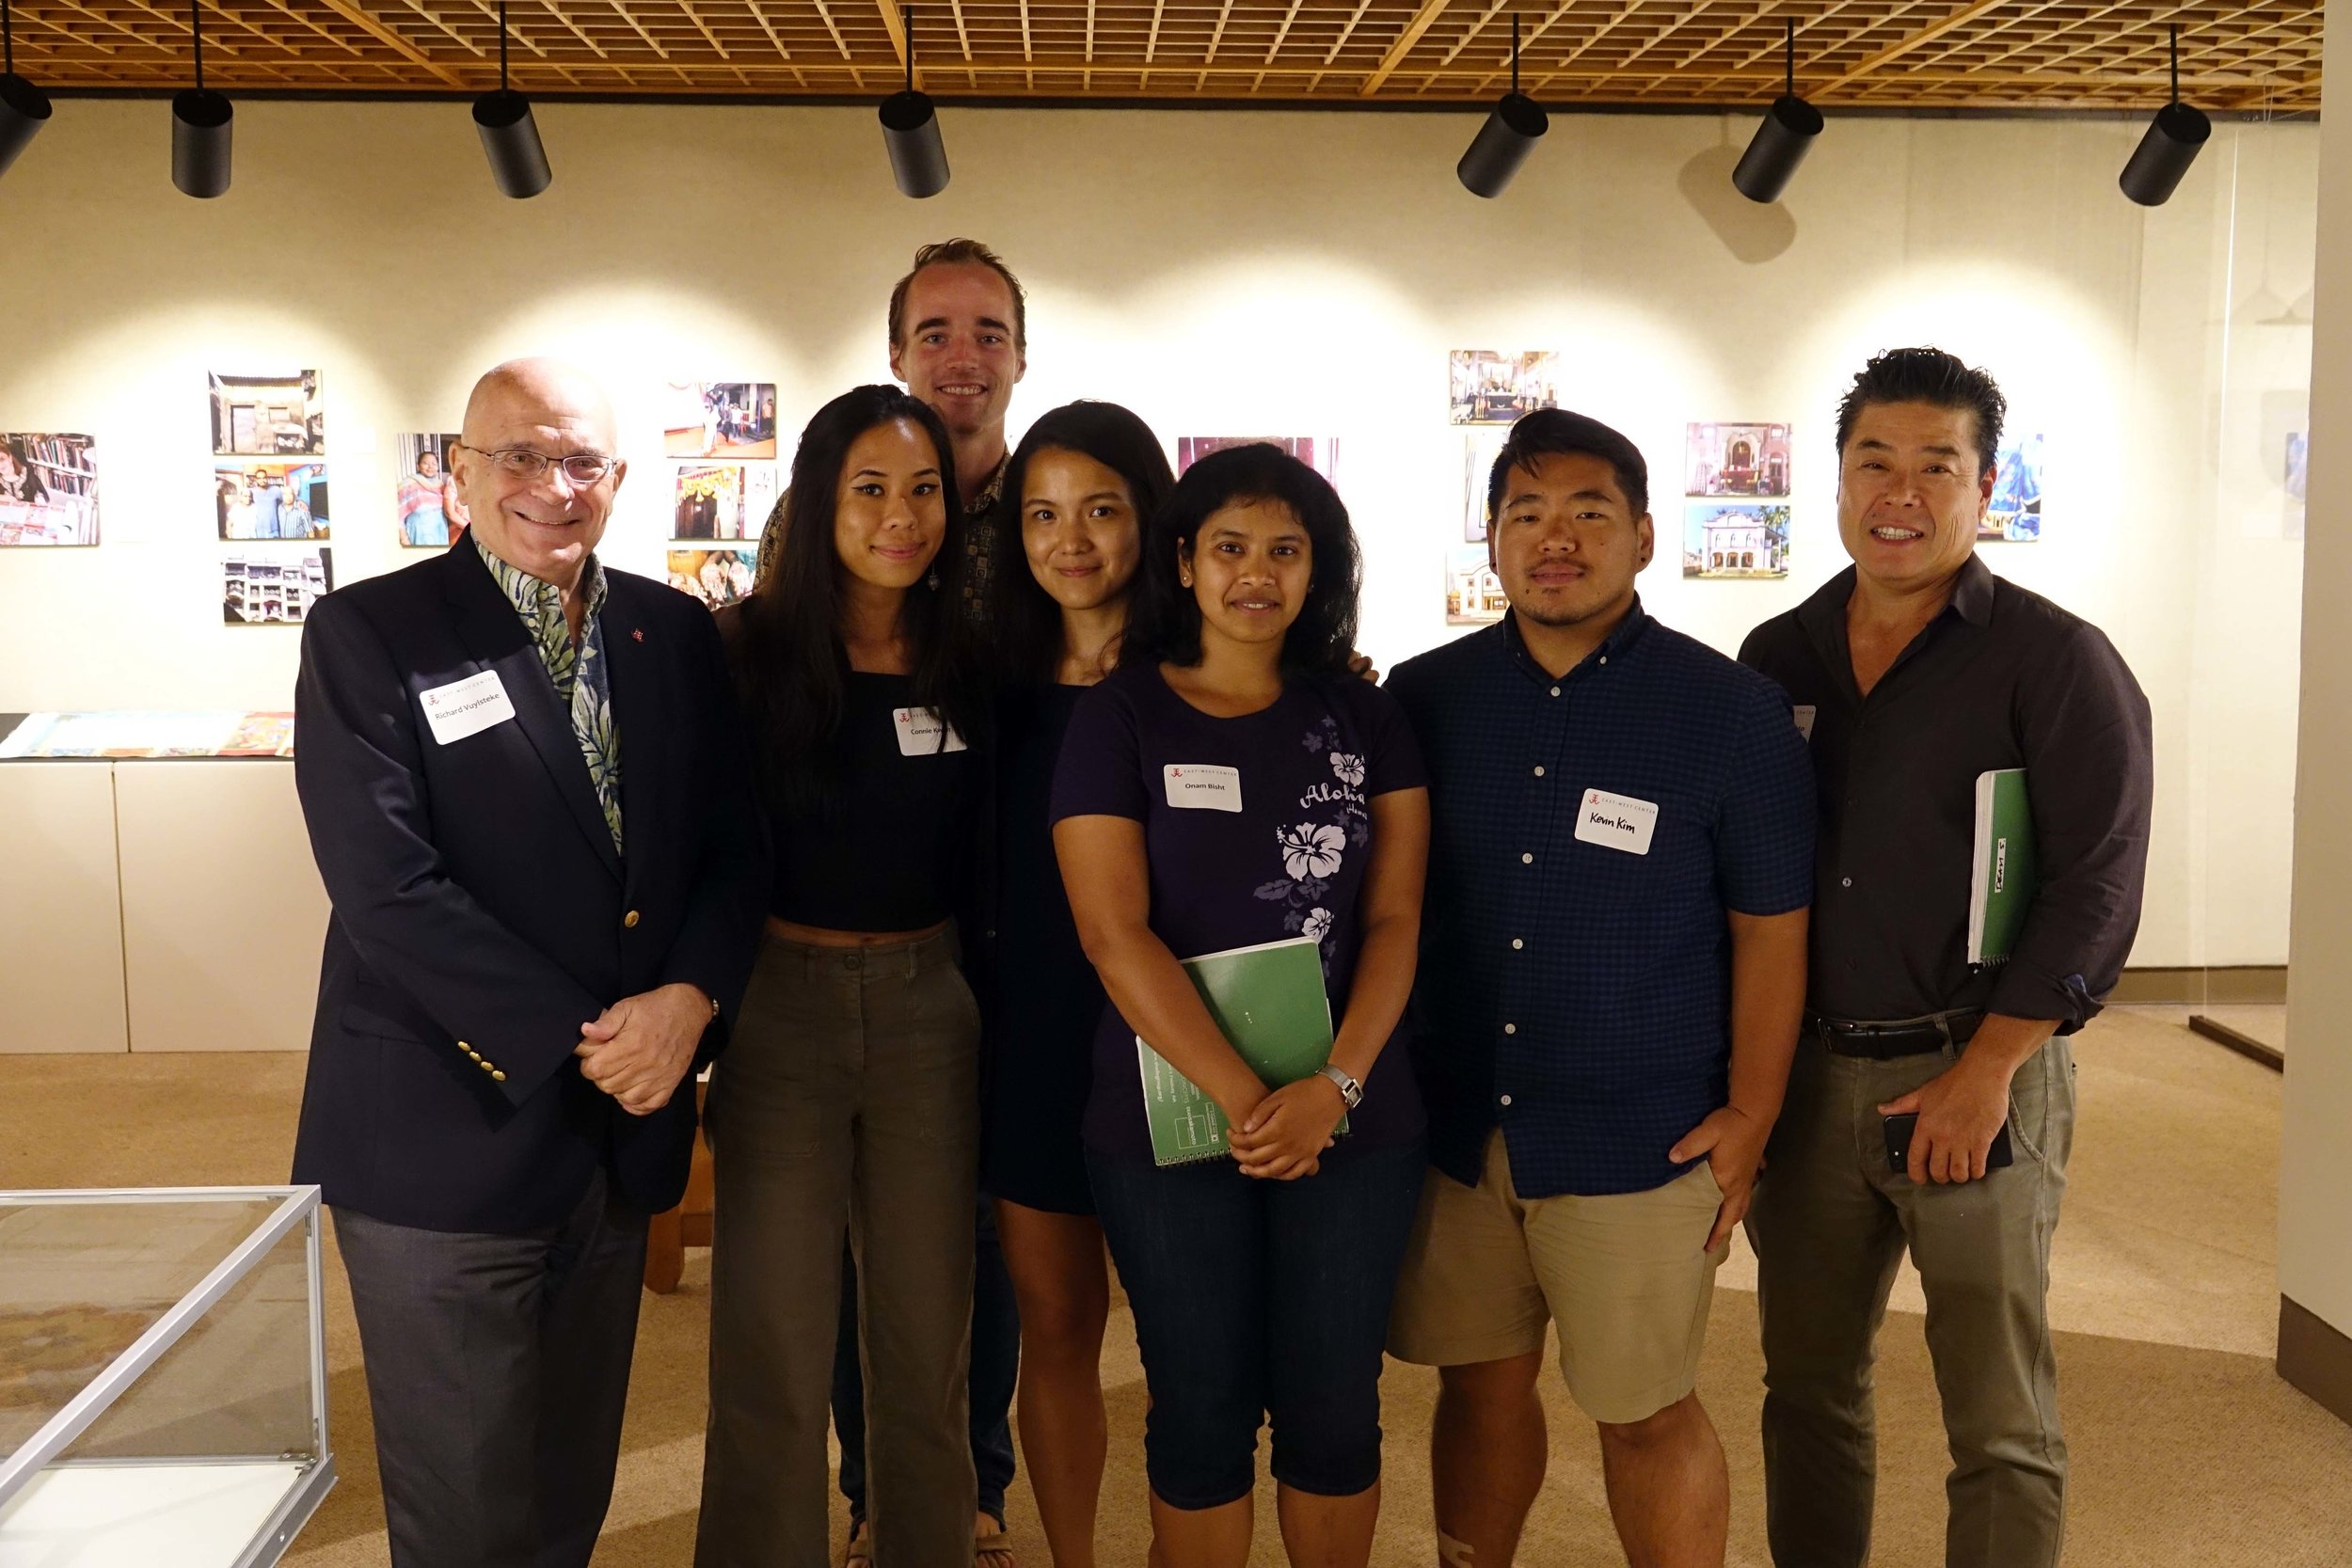 East-West Center President Richard Vuylsteke and SHADE  Fellows Connie Kwan, Kyler Carlson, Lee Hao Rong, Onam Bisht, Kevin Kim and Dean Sakamoto.     Photo credit: Eric Chang,  East-West Center